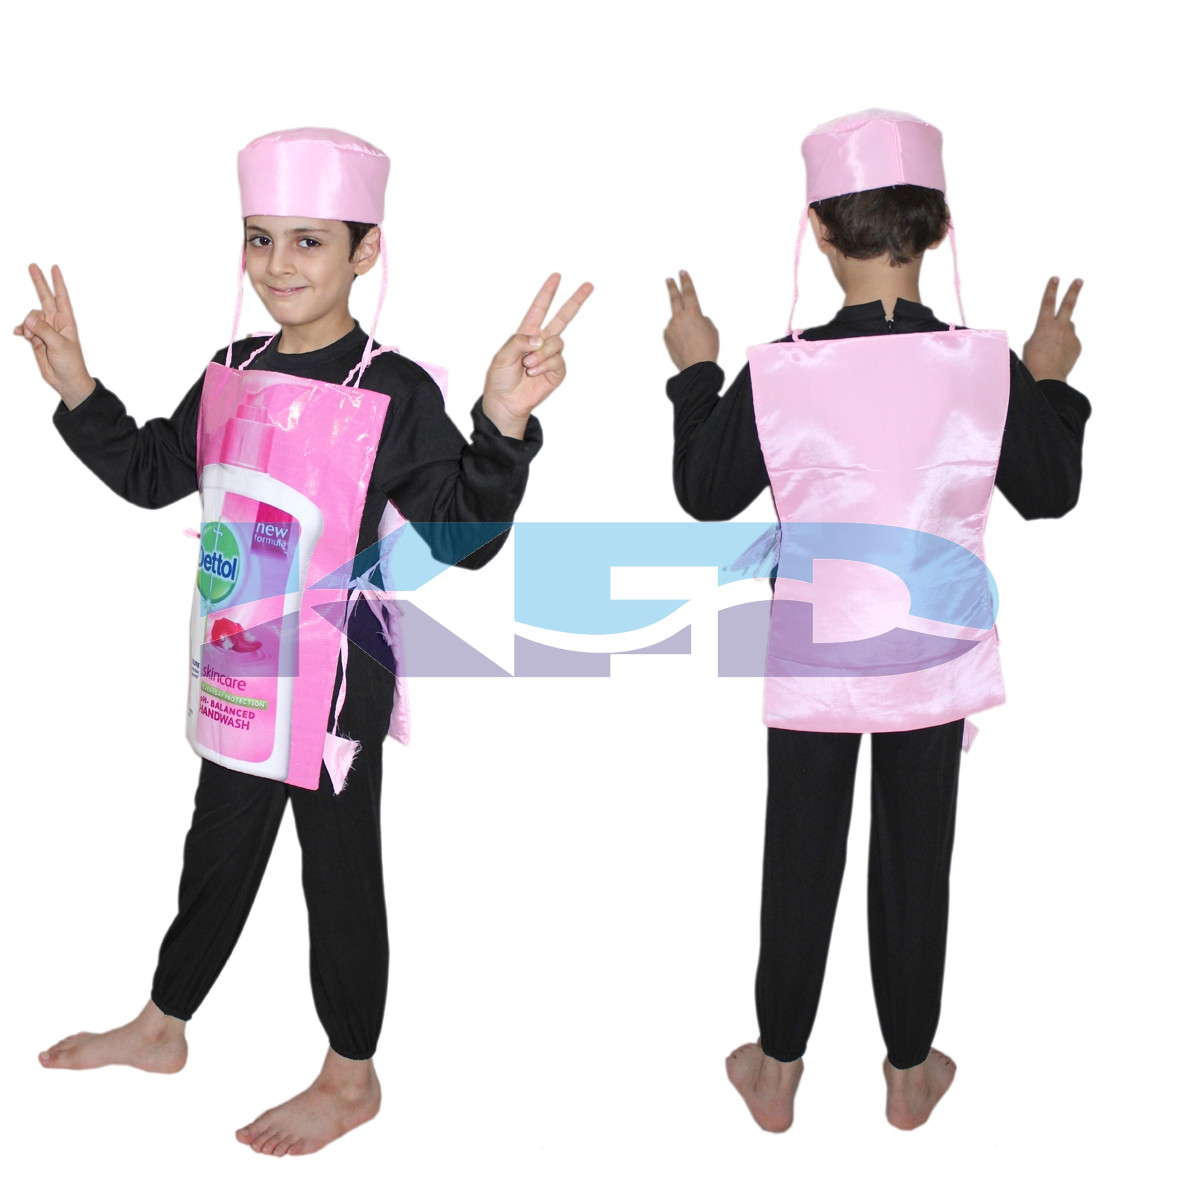 Dettol Handwash Costume,Object Costume for School Annual function/Theme Party/Competition/Stage Shows/Birthday Party Dress